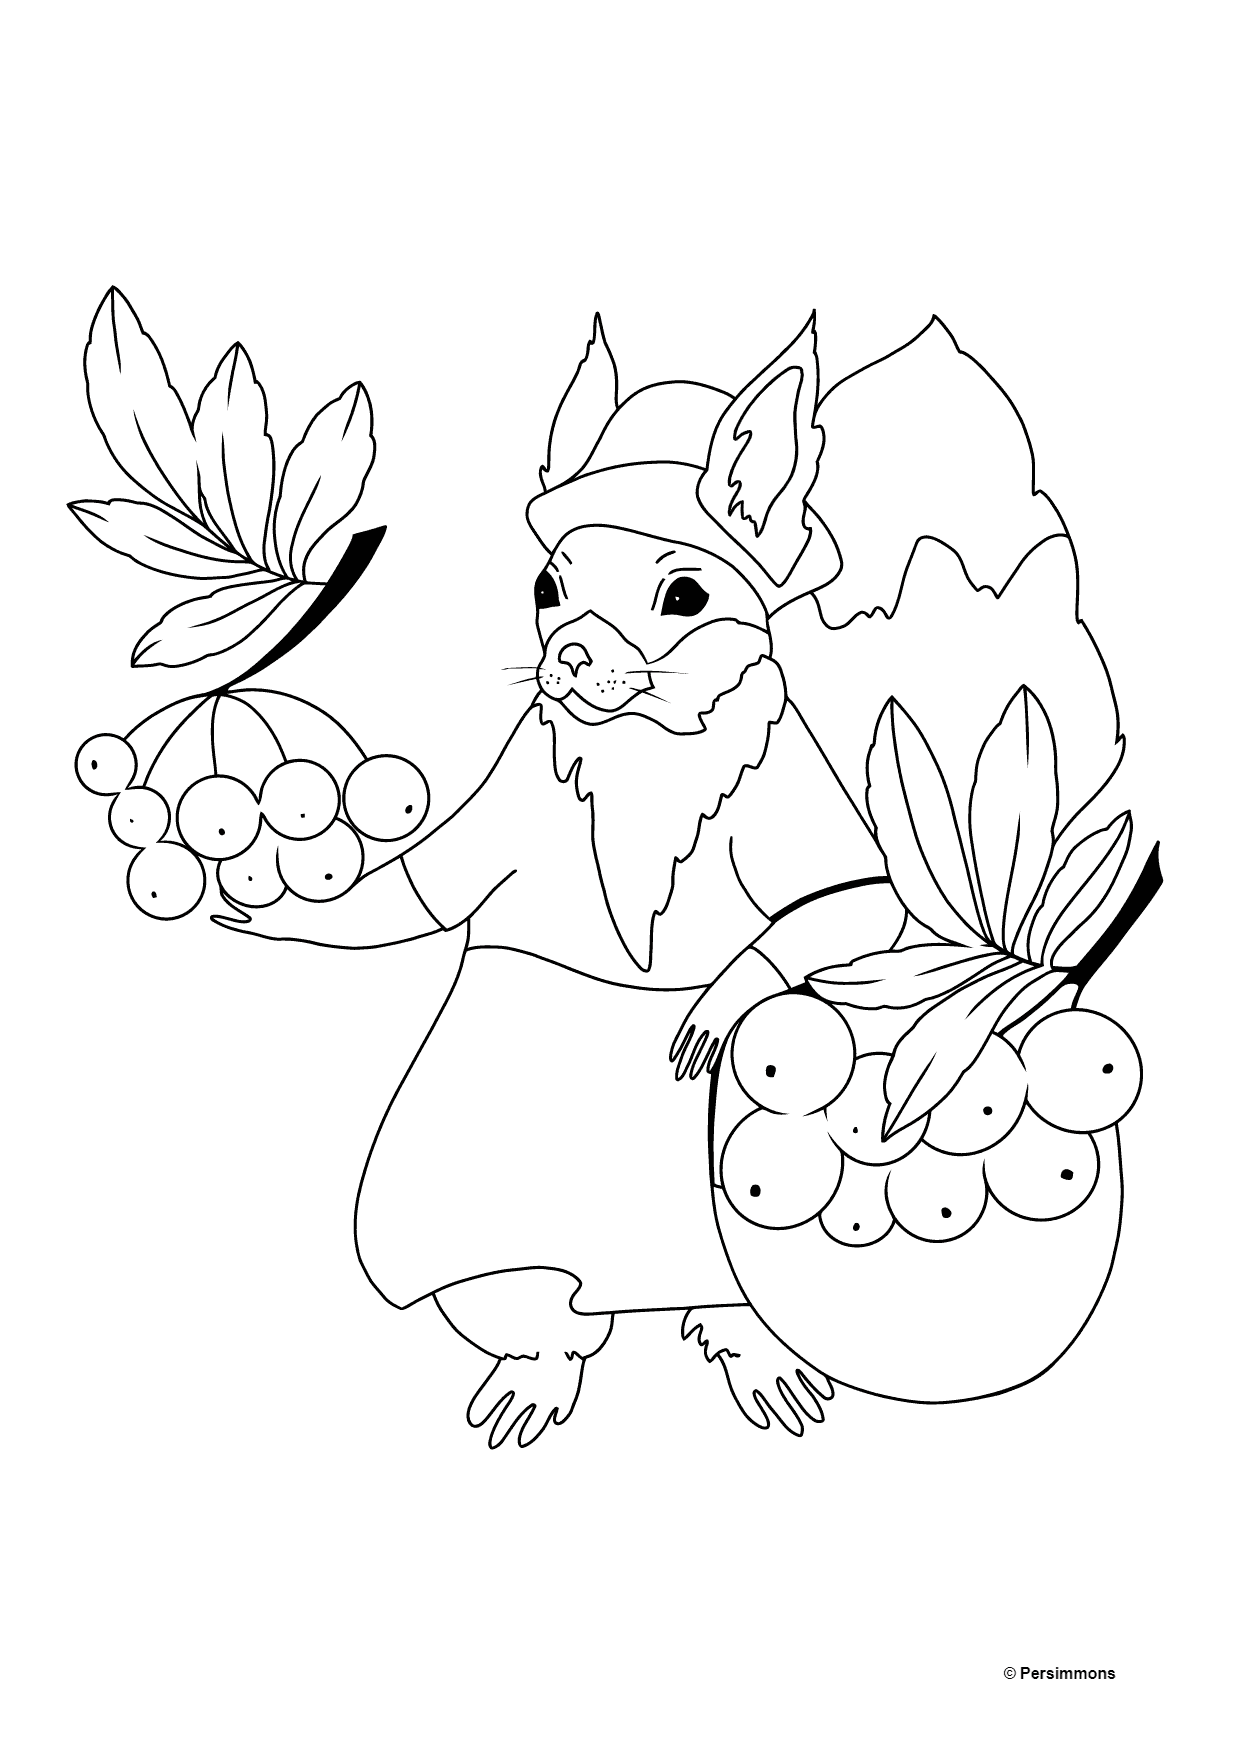 Autumn Coloring Page - A Squirrel with Red Rowanberries for Kids